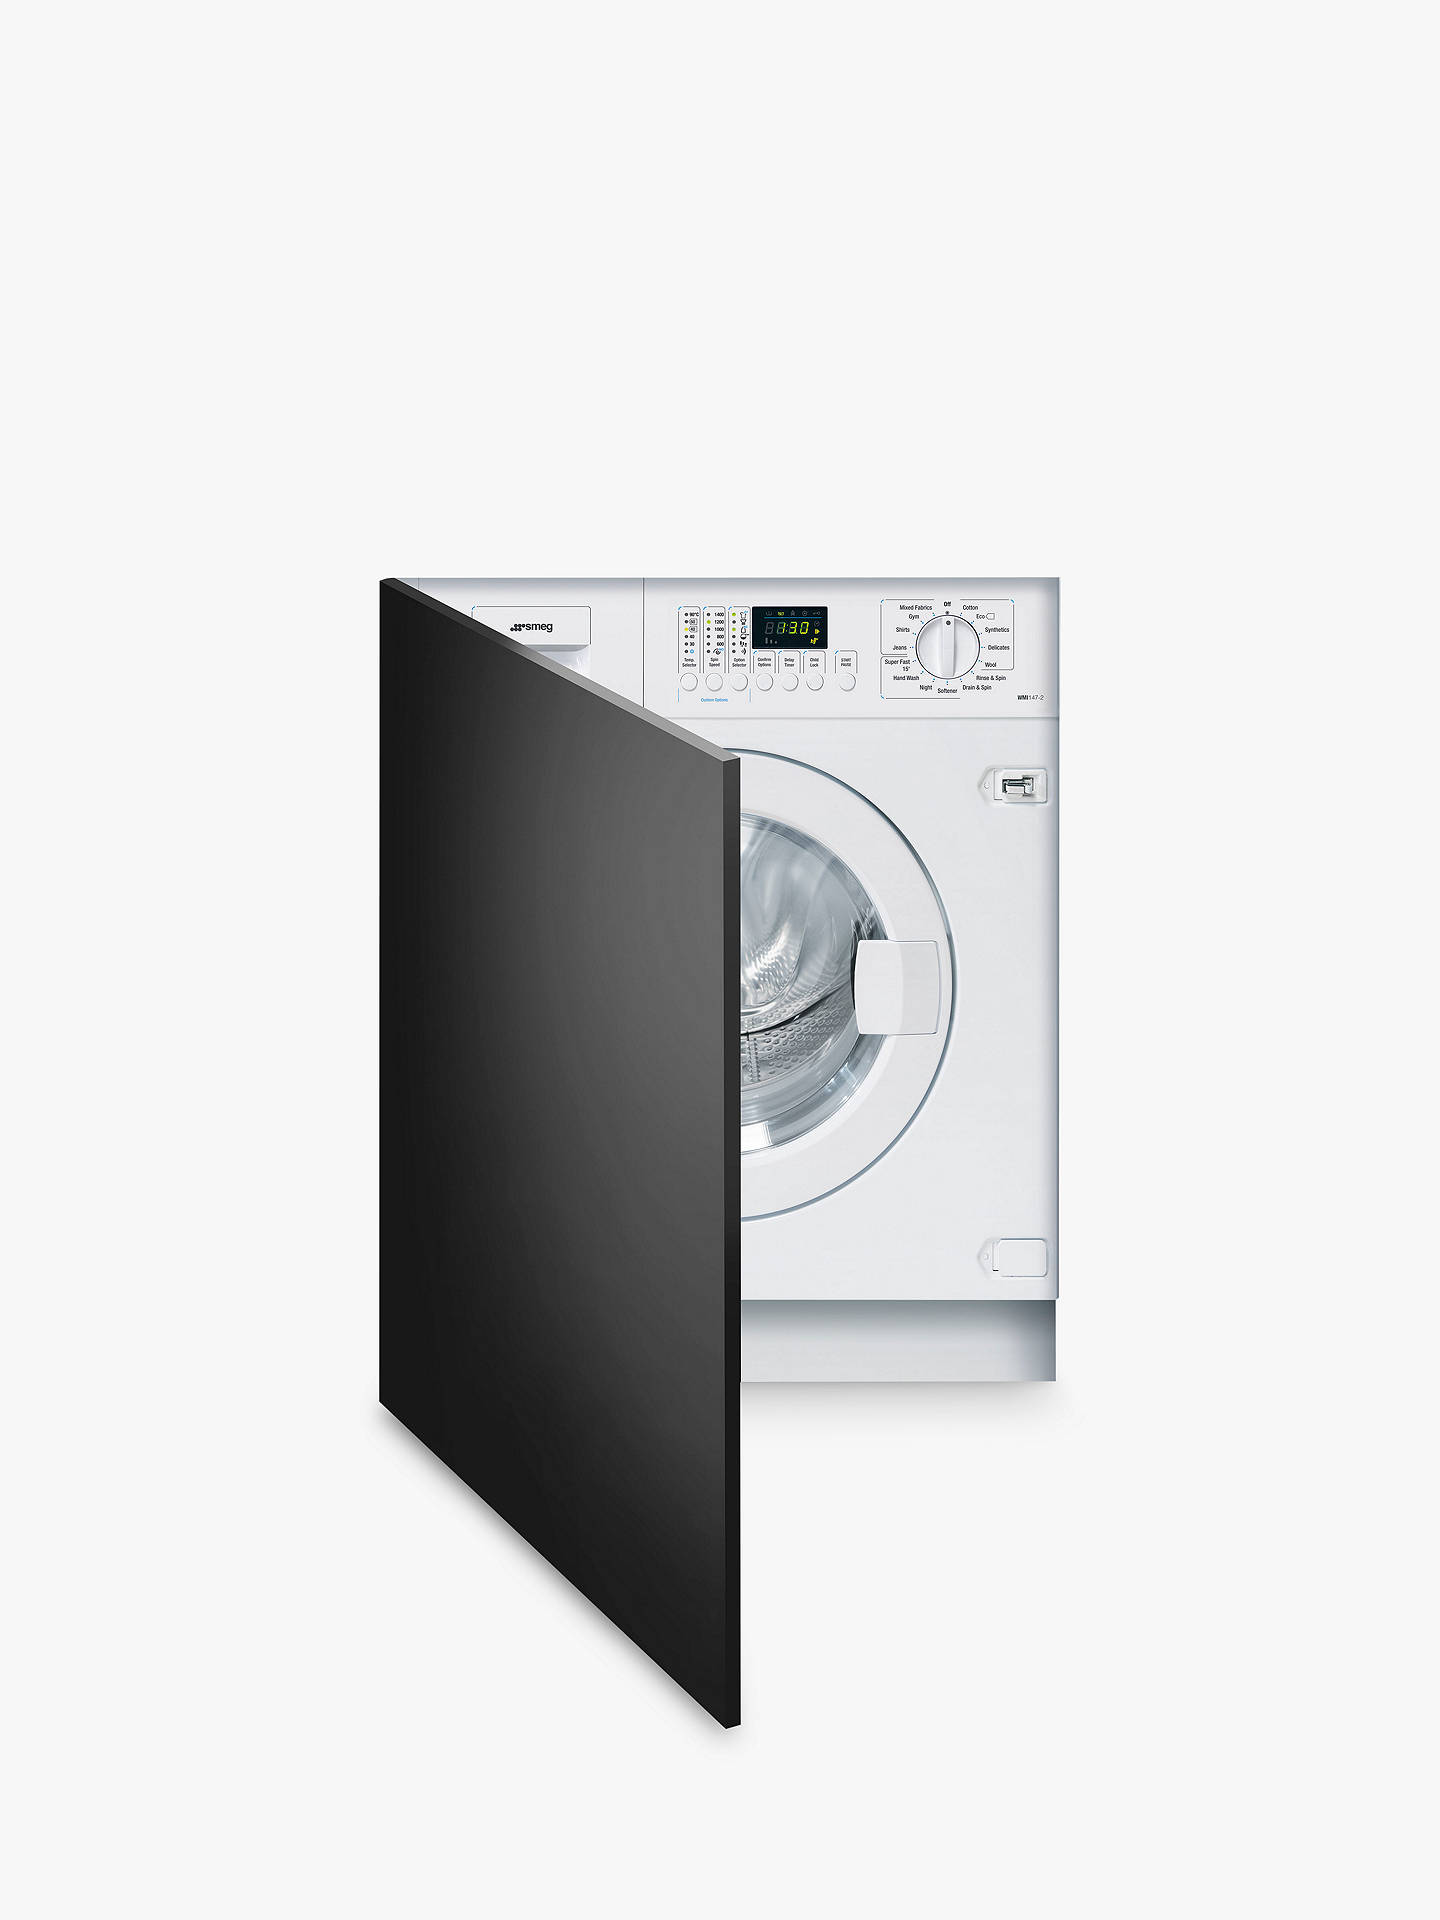 BuySmeg WMI147-2 Slimline Integrated Washing Machine, 7kg Load, A++ Energy Rating, 1400rpm Spin, White Online at johnlewis.com